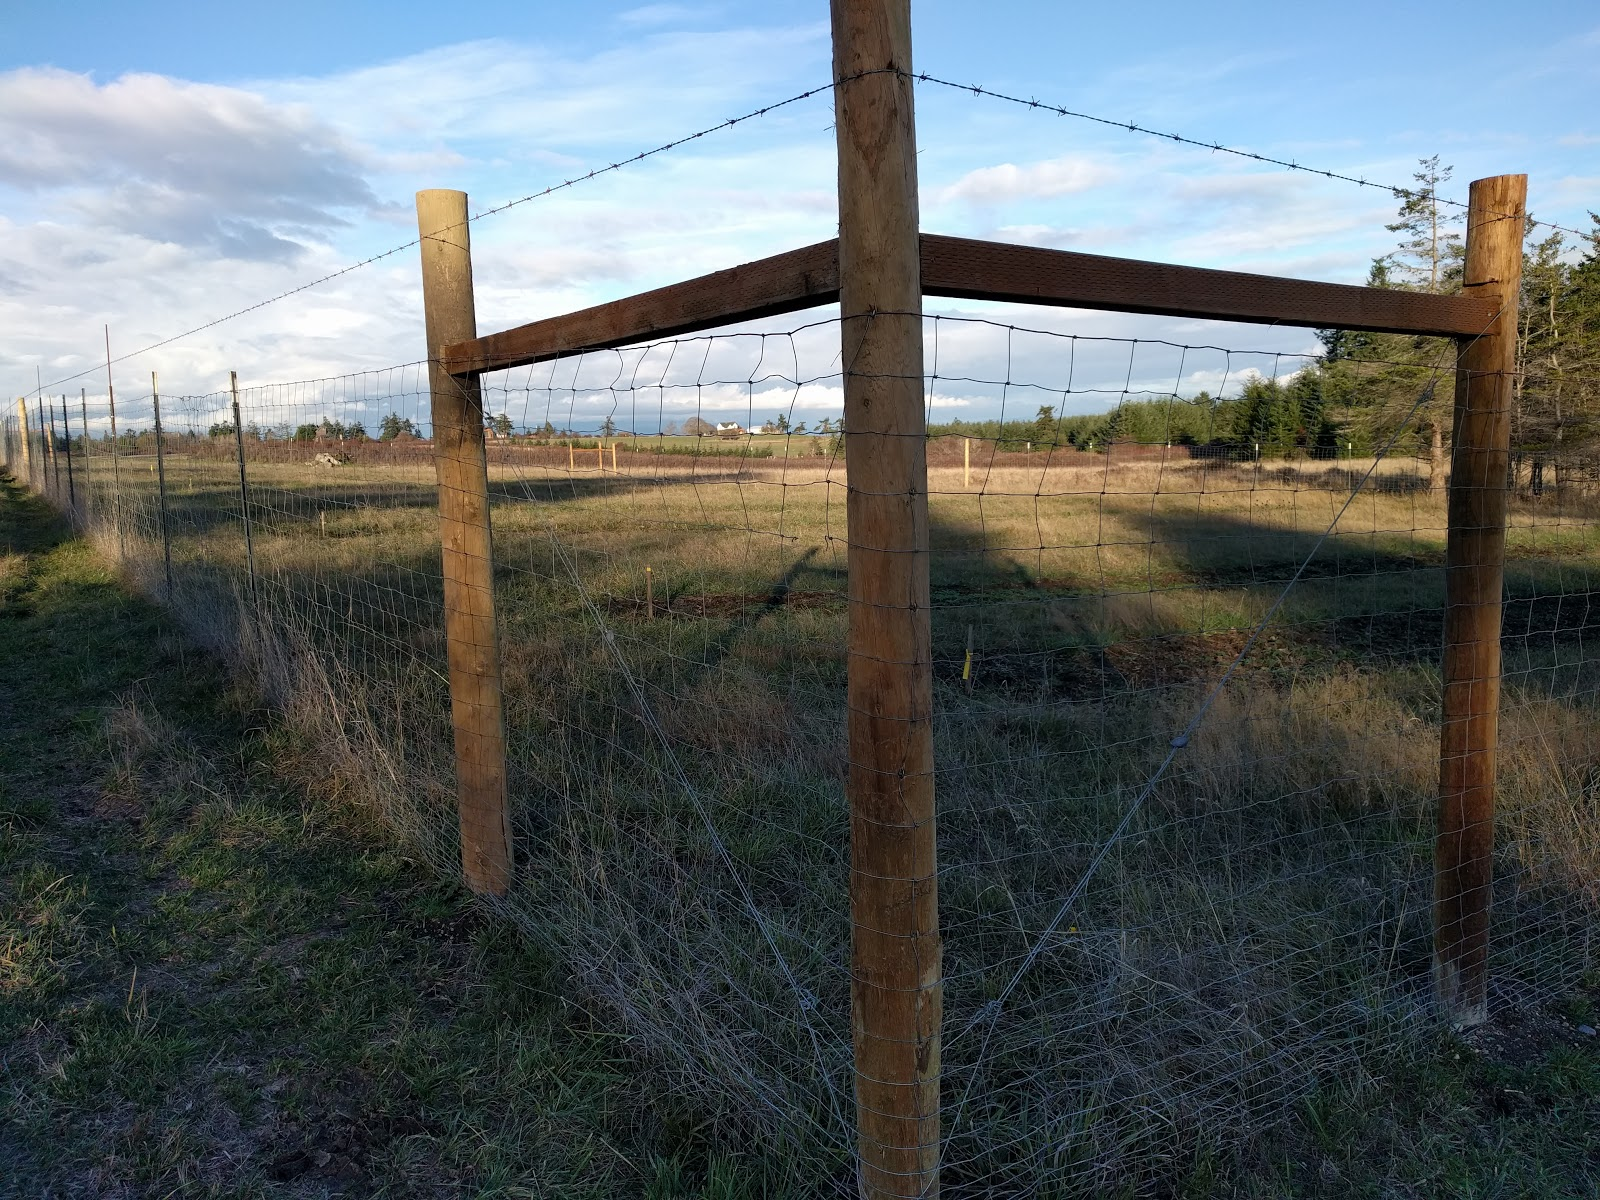 Copyright 169 2014 daniels custom fences decks amp construction - Frazer Homestead Preserve 55 Acres That Went Up For Lease This Past Year